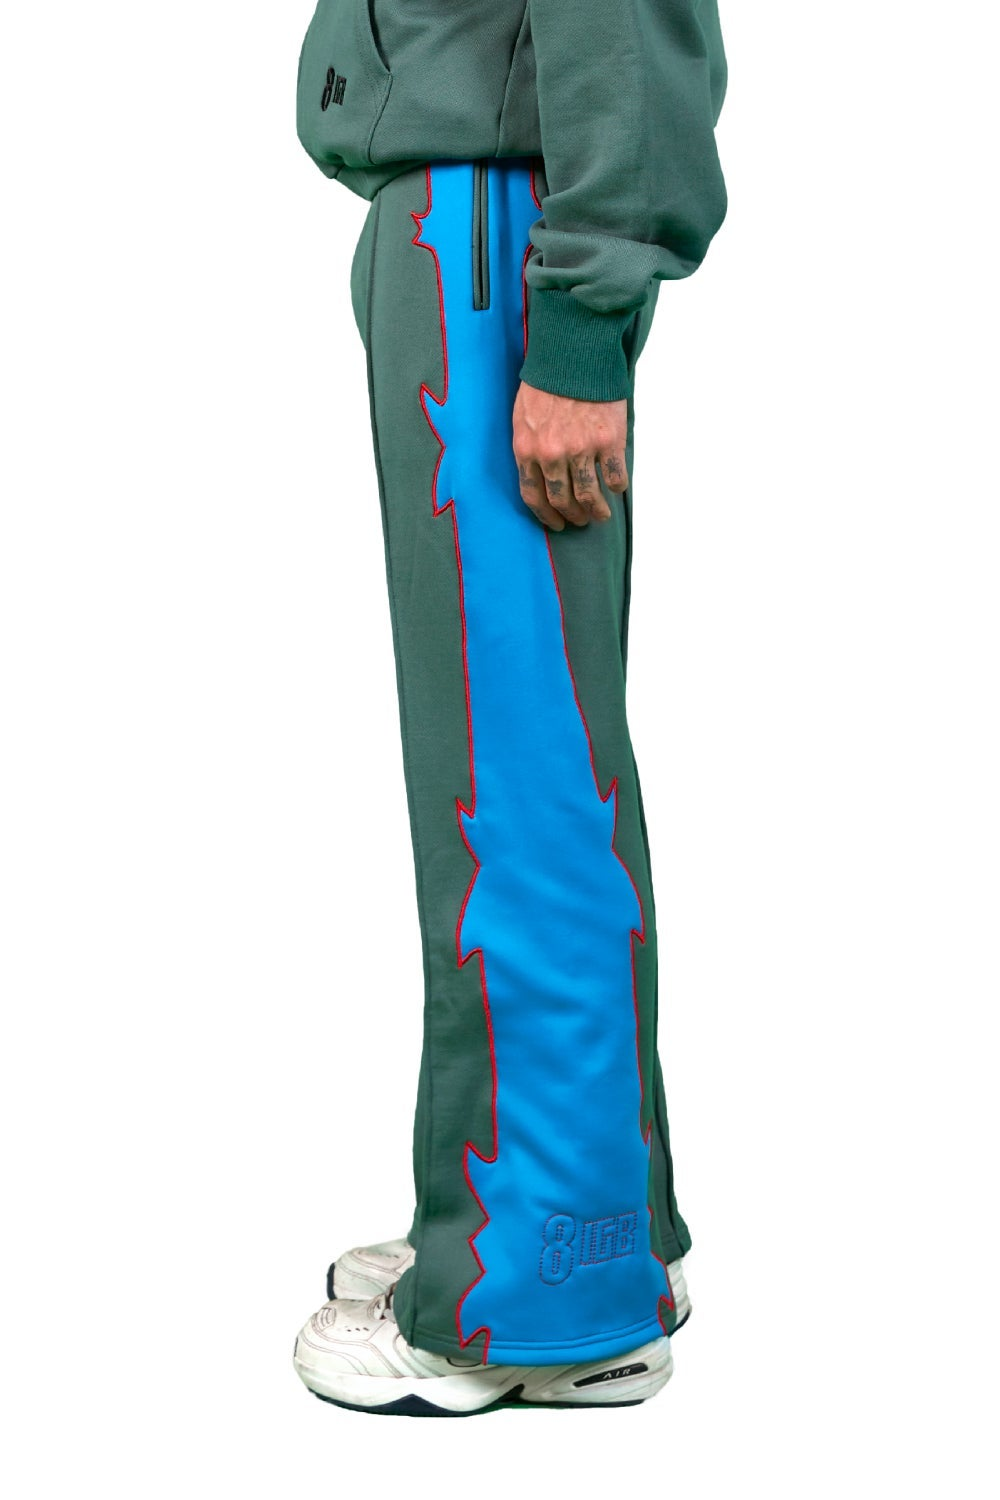 Image of 8IGB - Tyrolean Tracksuit Pants